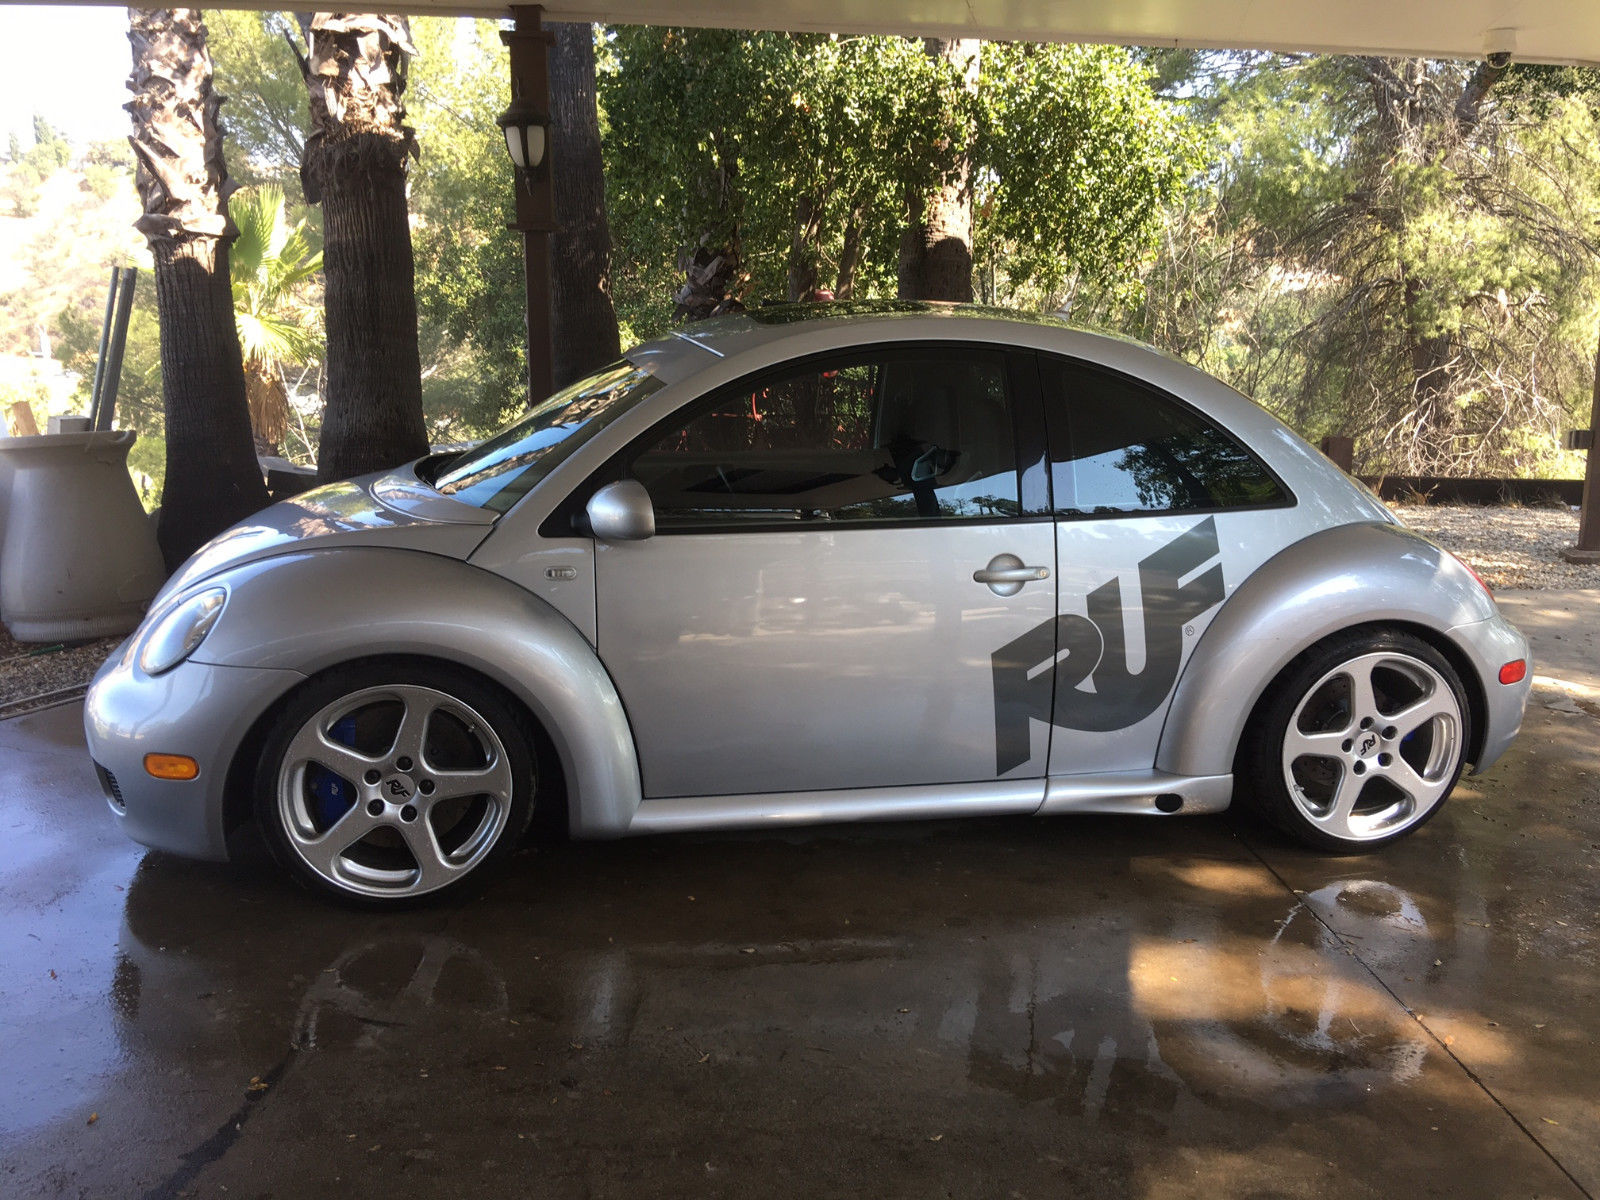 tuner tuesday gcfsb alumnus 2002 ruf volkswagen beetle turbo s concept german cars for sale blog. Black Bedroom Furniture Sets. Home Design Ideas